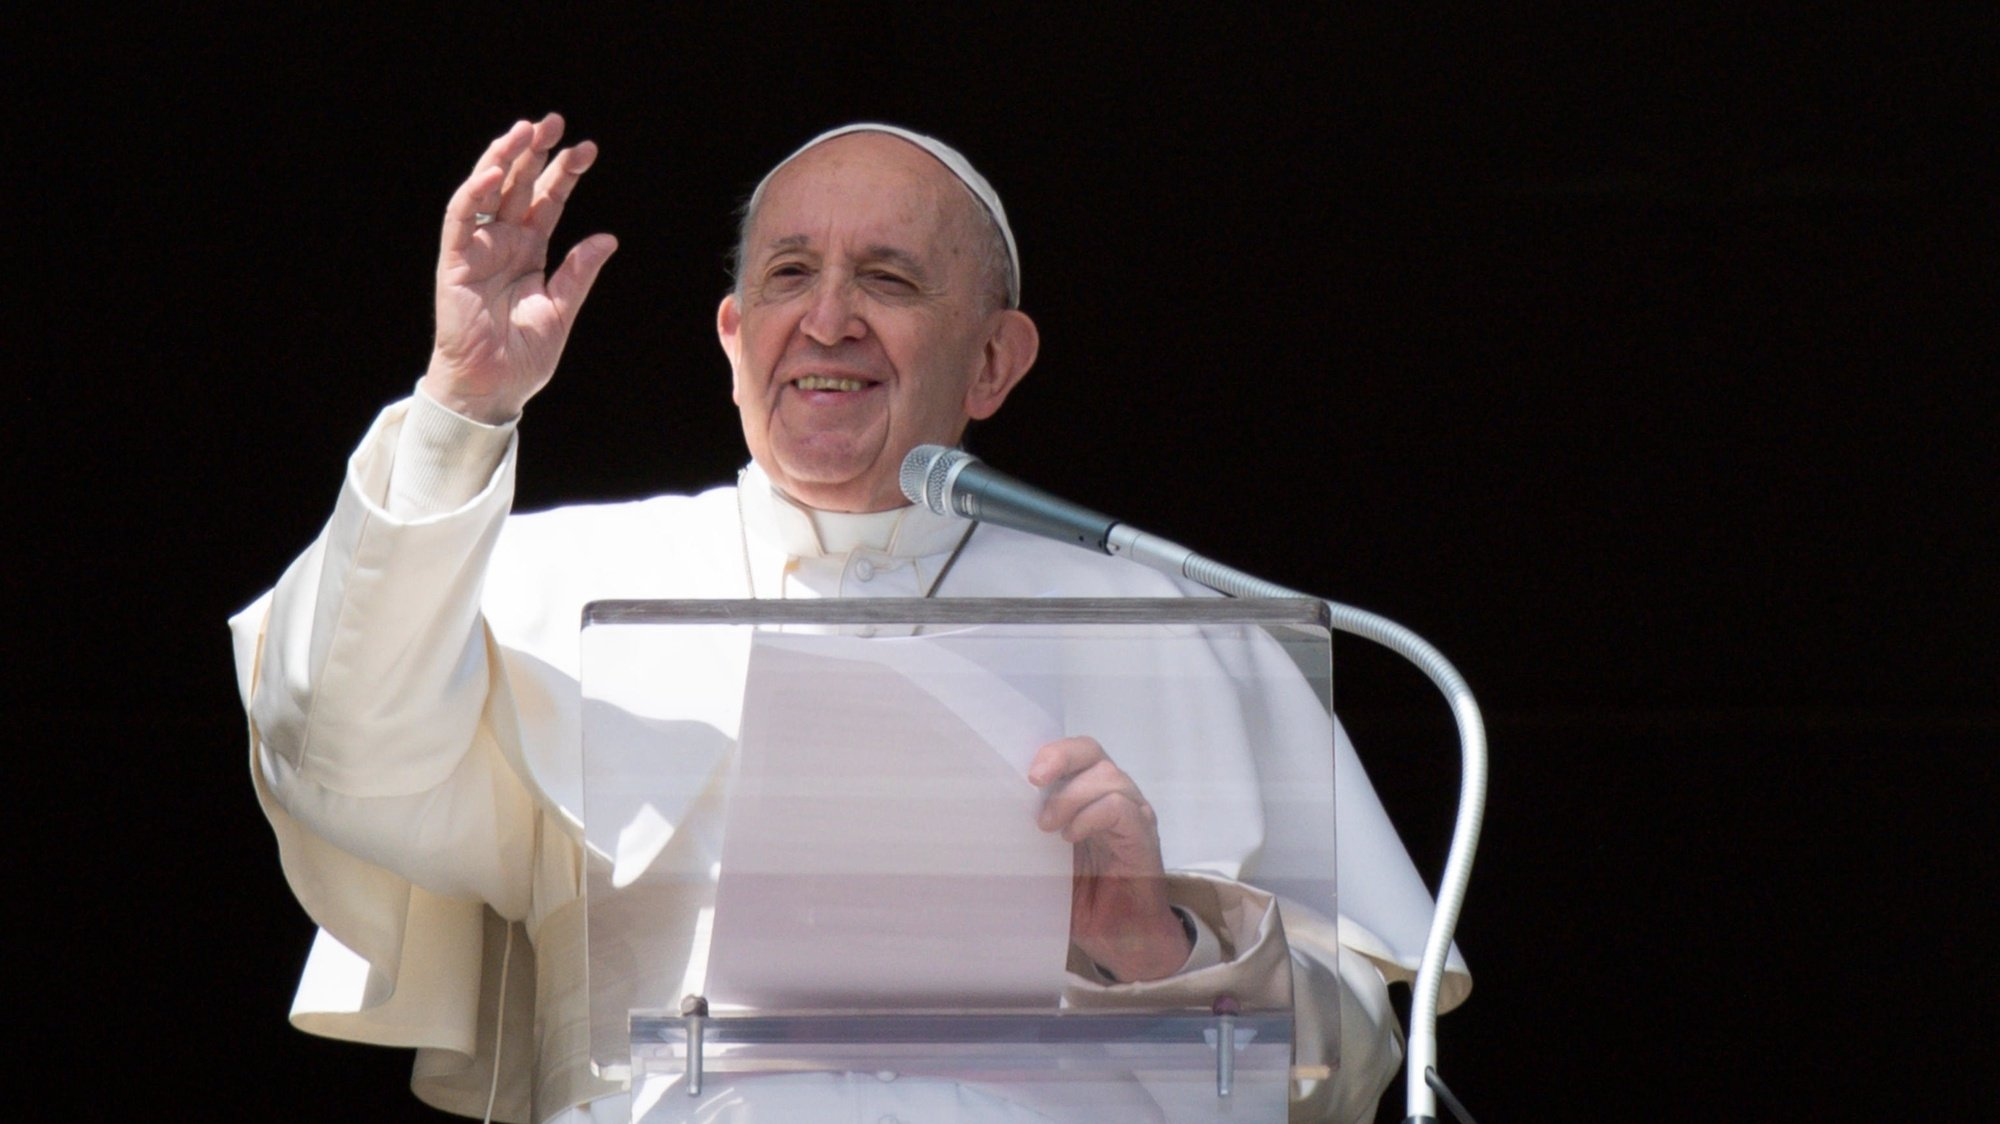 epa09044239 A handout picture provided by the Vatican Media shows Pope Francis reciting the prayer of the Angelus from the window of his study overlooking Saint Peter's Square, Vatican City, 28 February 2021 (issued 01 March 2021).  EPA/VATICAN MEDIA HANDOUT  HANDOUT EDITORIAL USE ONLY/NO SALES